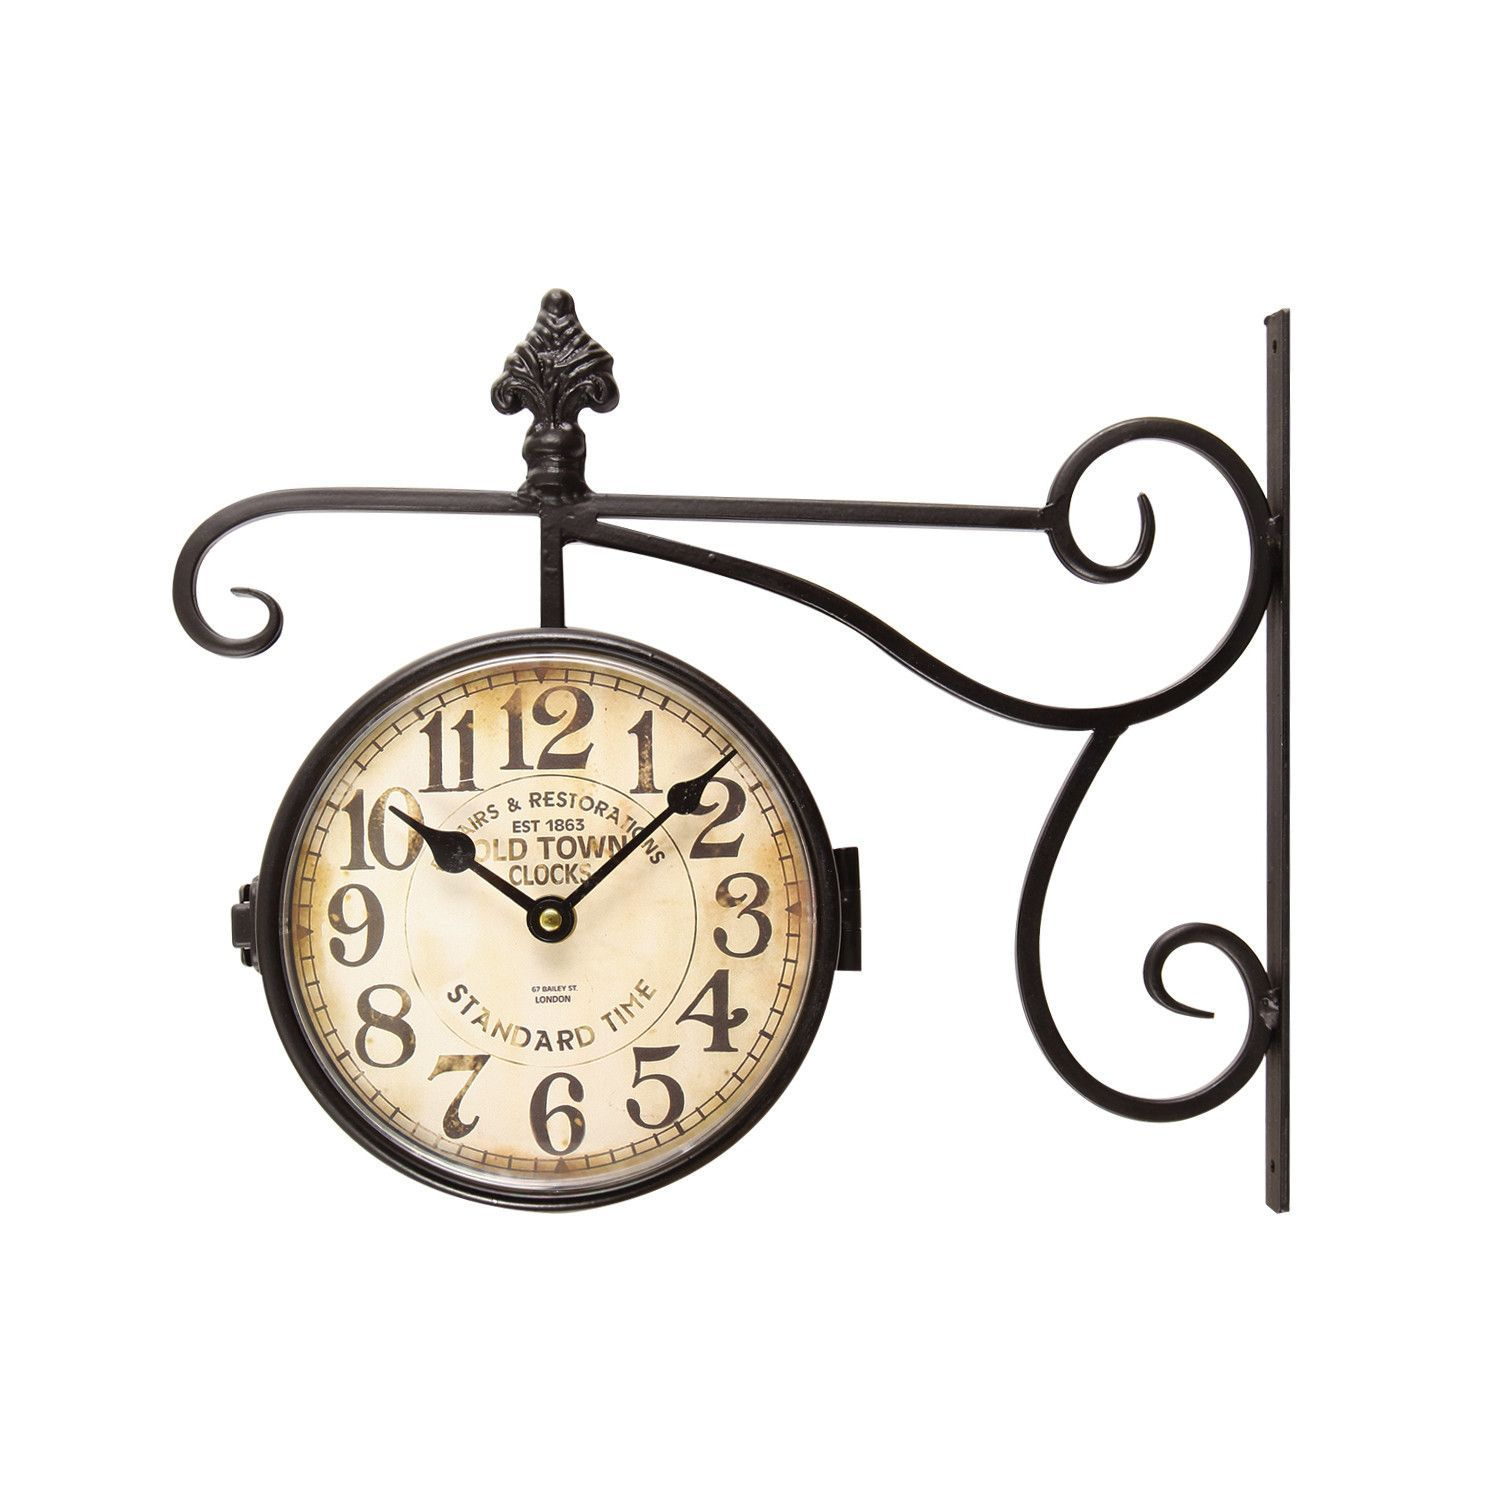 Furnistars Black Iron Vintage Inspired Double Sided Wall Clock with